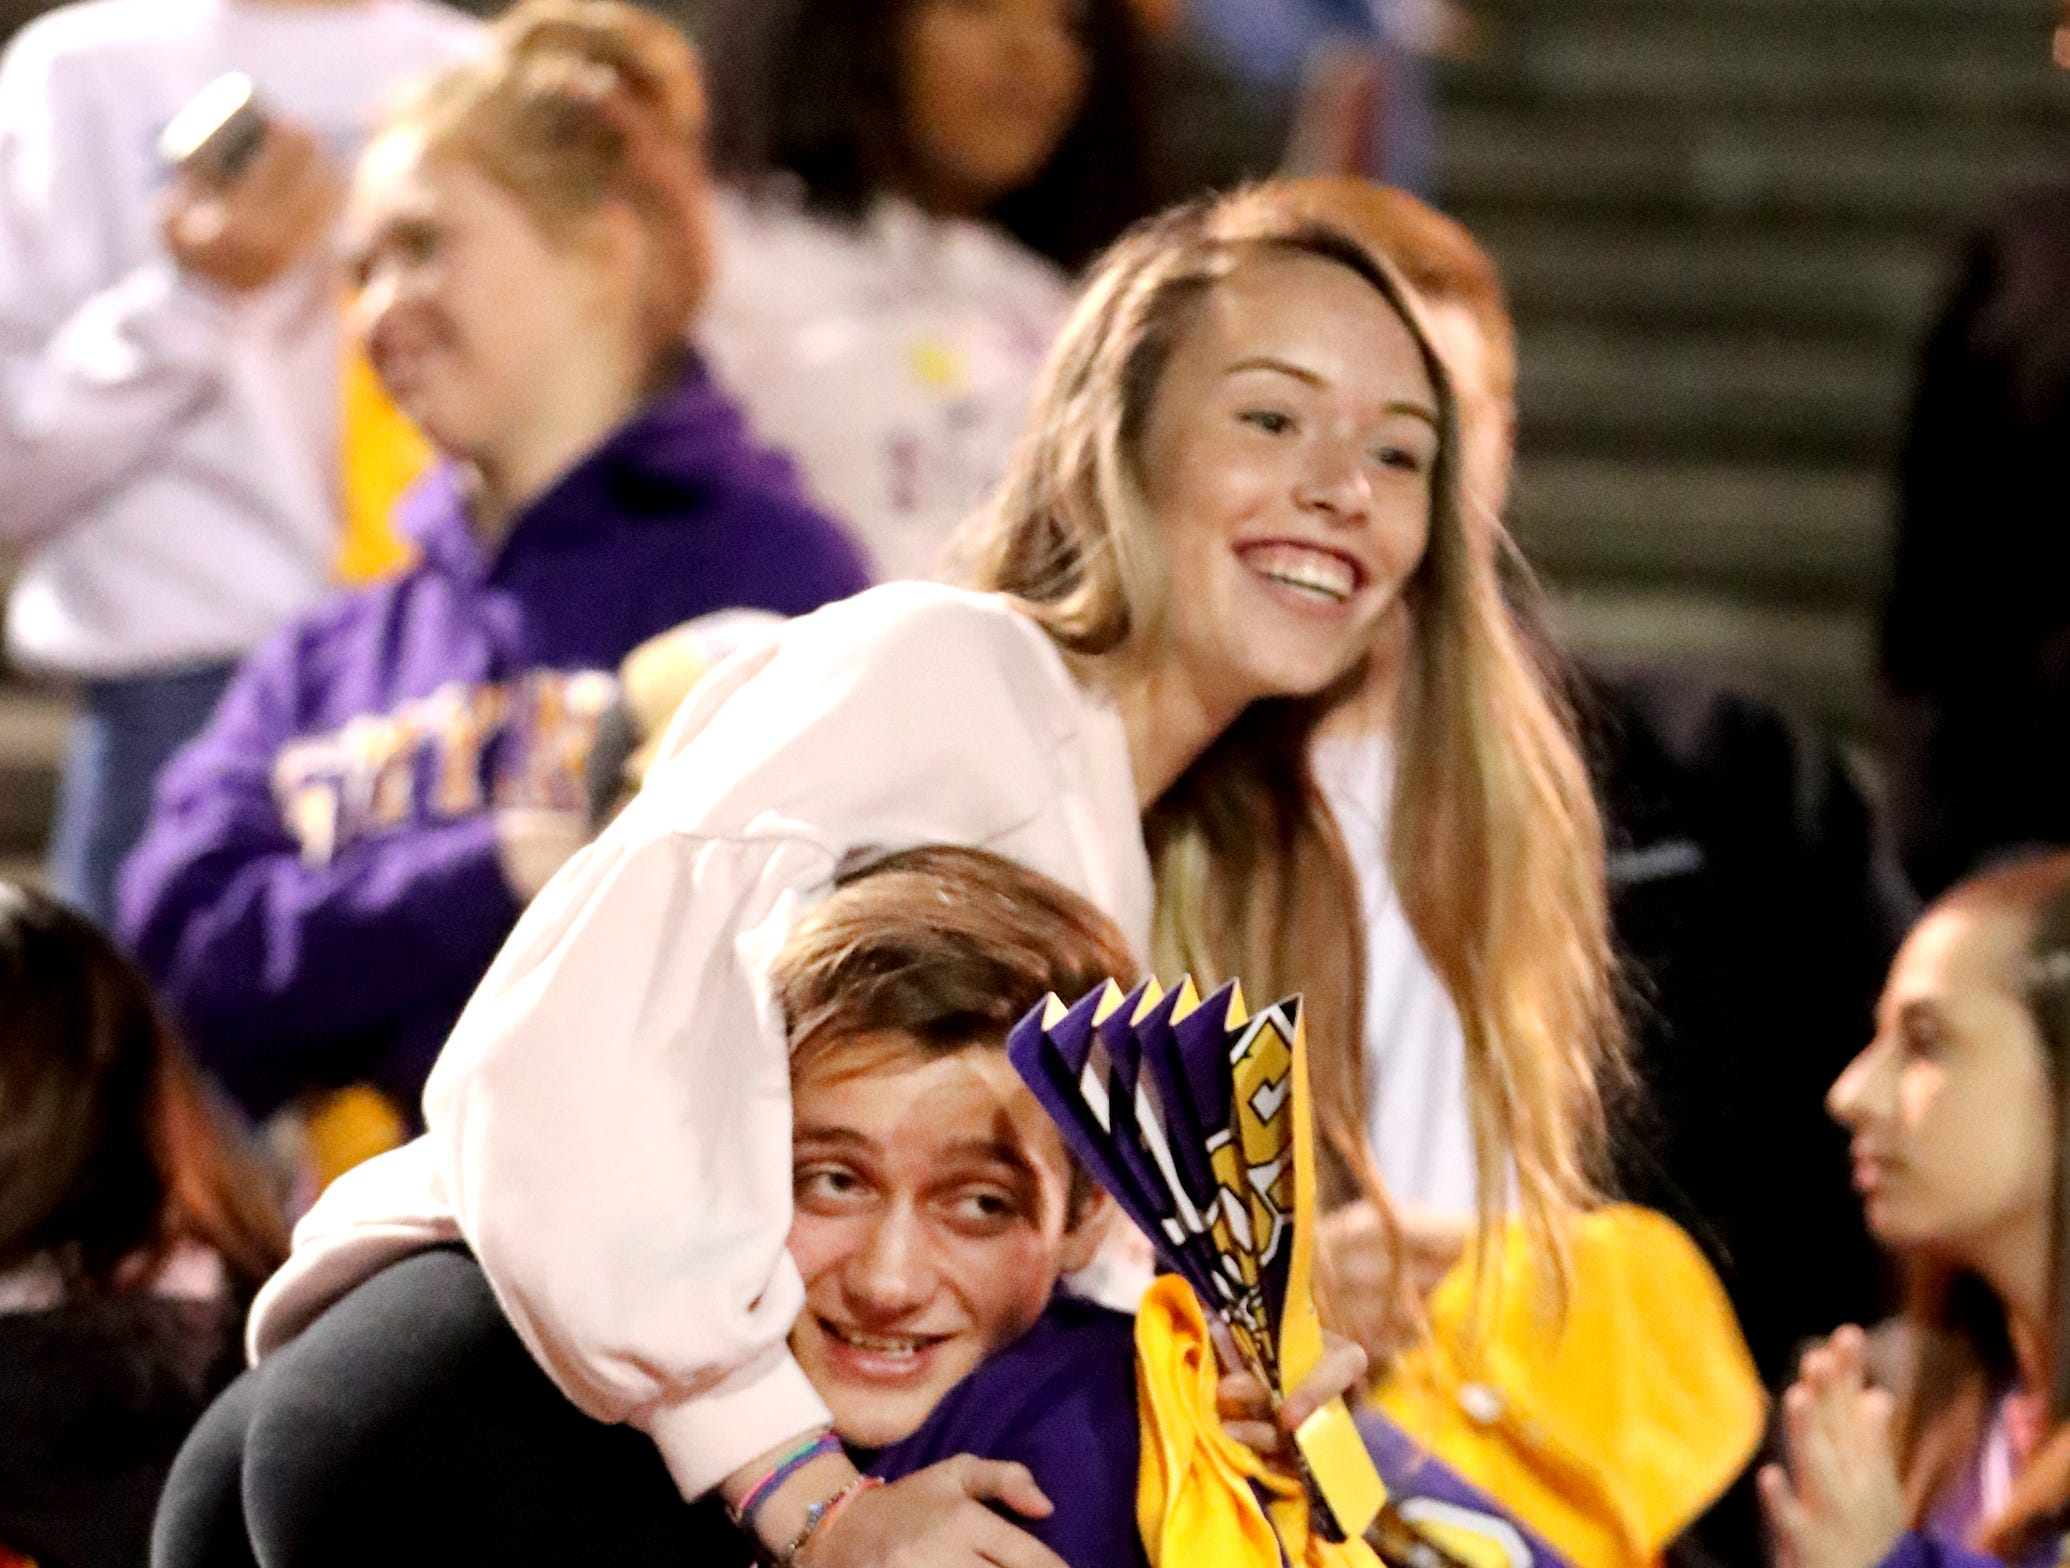 Smyrna seniors Elijah Moosekian, lifts up Lauren McMaken in the stands before the start of the game against Stewarts Creek at Smyrna High School on Friday, Oct. 12, 2018.